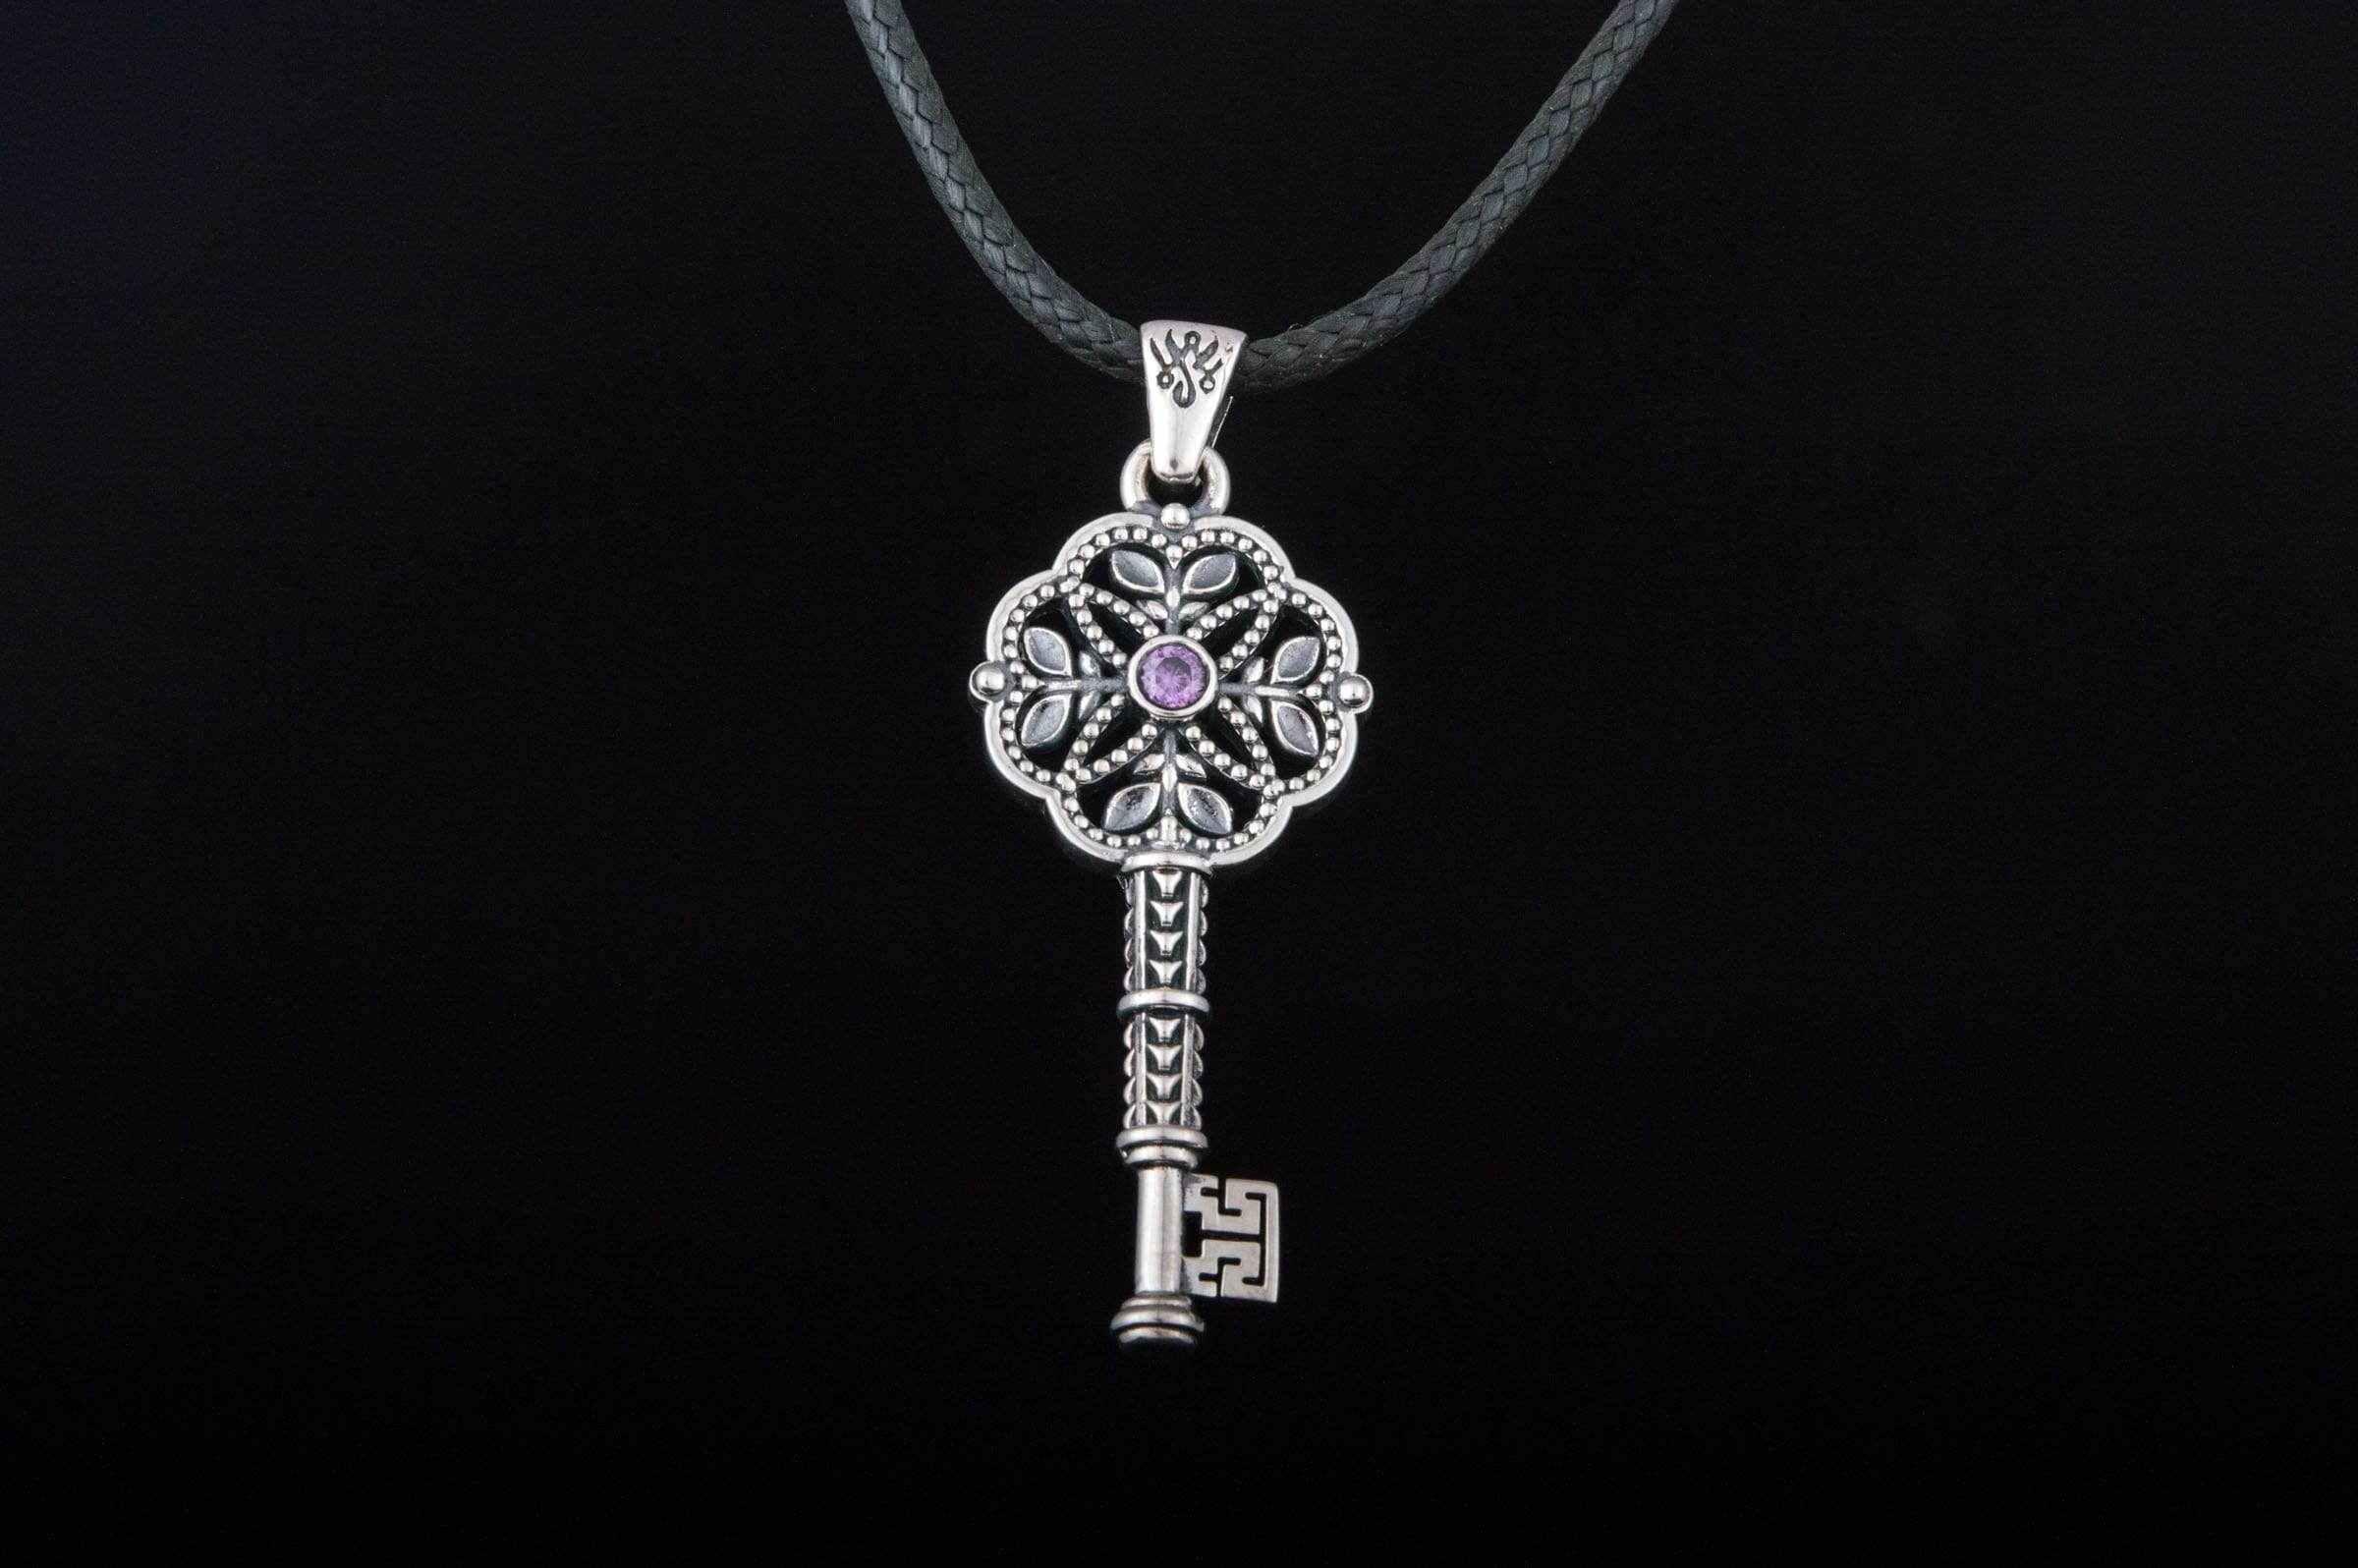 Ancient Smithy VW jewelry Fashion Key Pendant with Cubic Zirconia Sterling Silver Jewelry